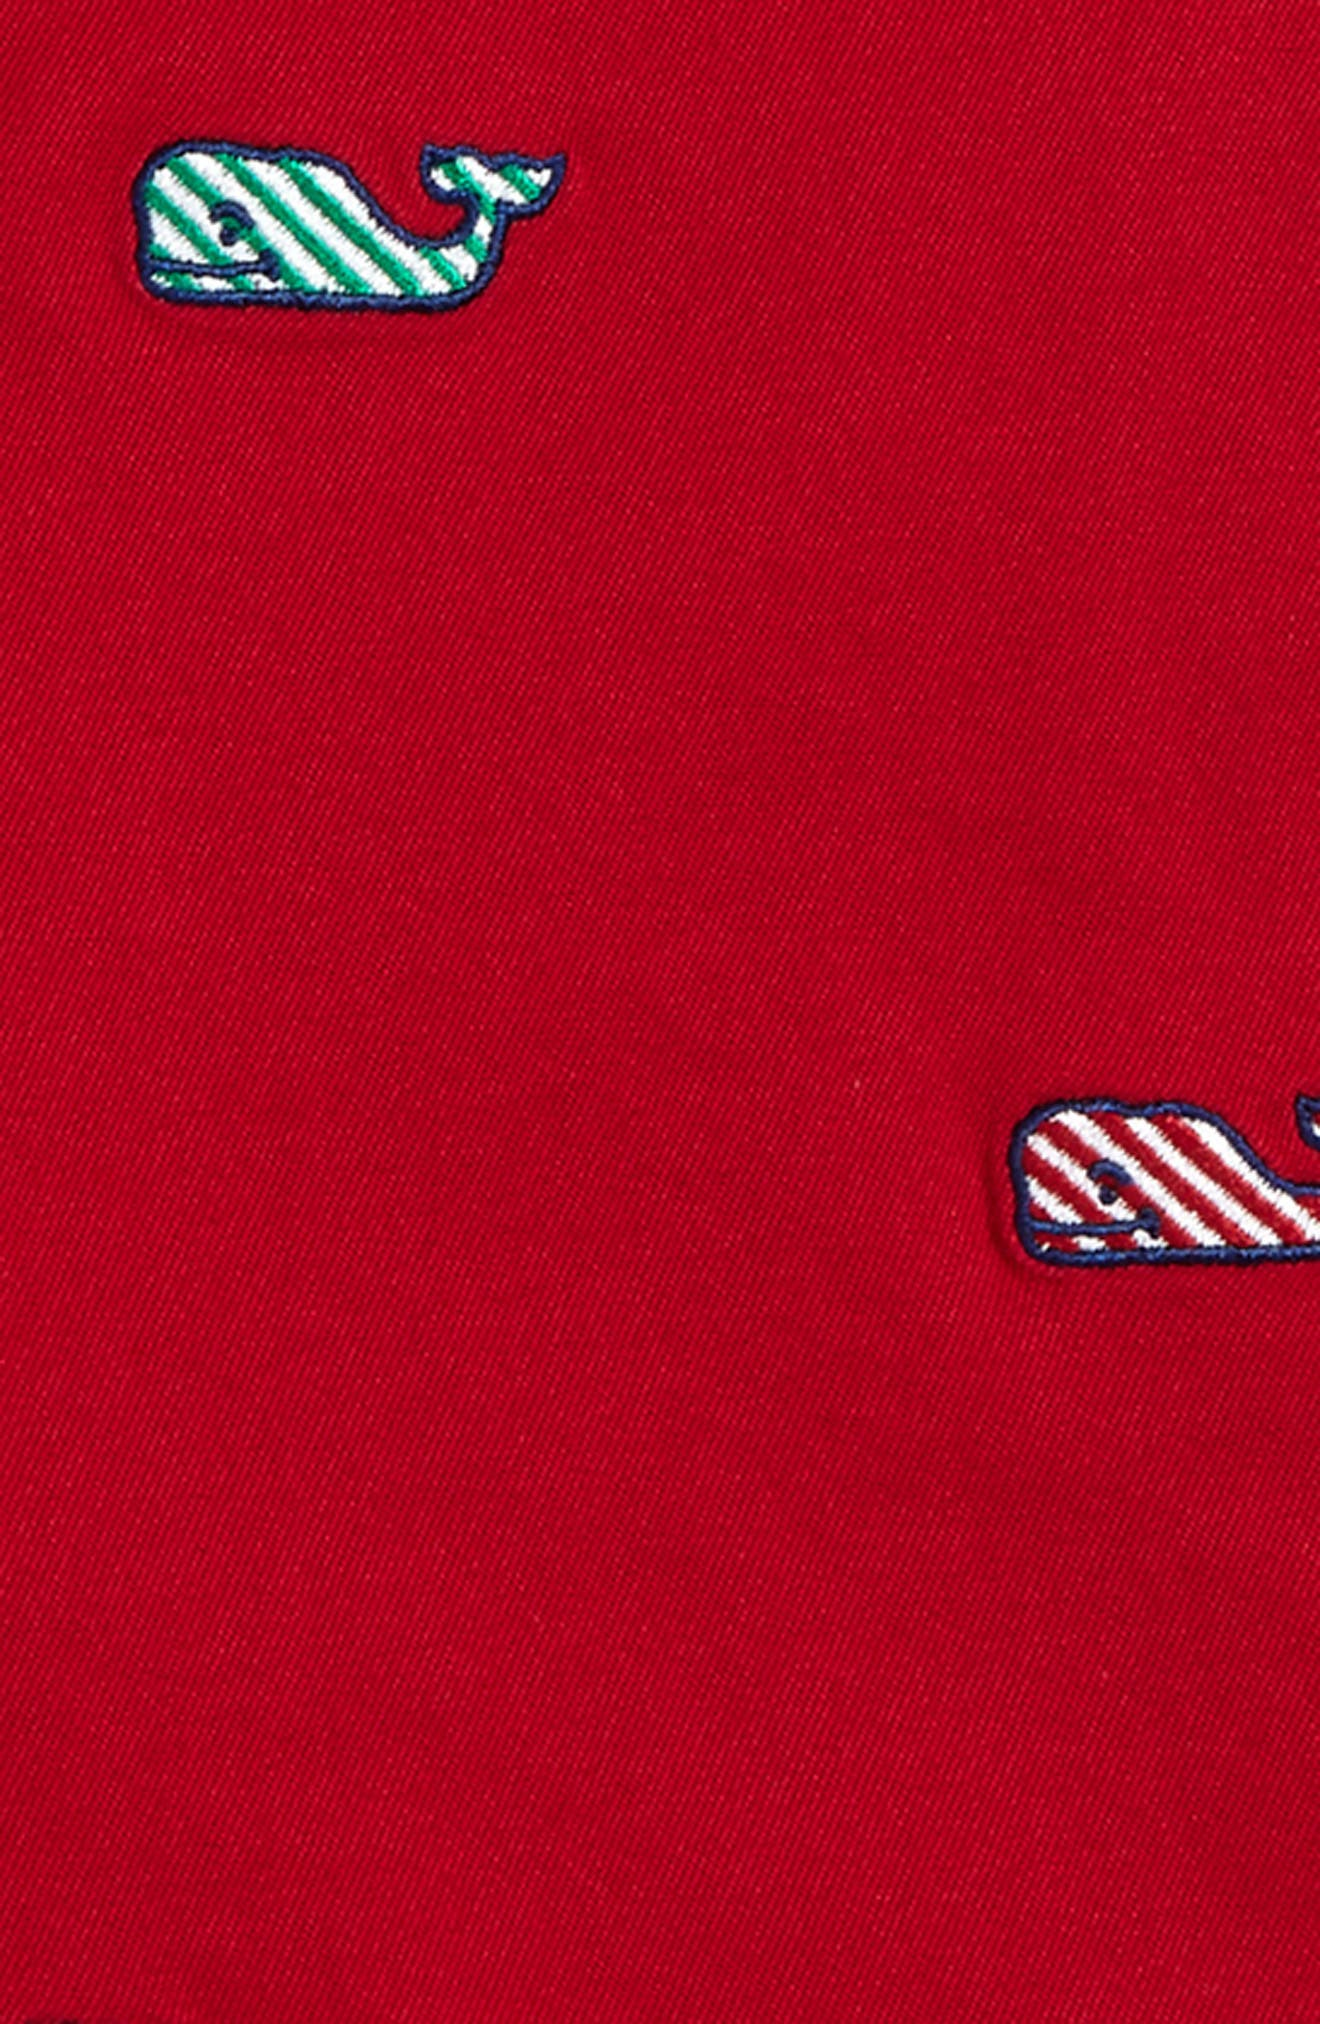 Candy Cane Whale Breaker Shorts,                             Alternate thumbnail 2, color,